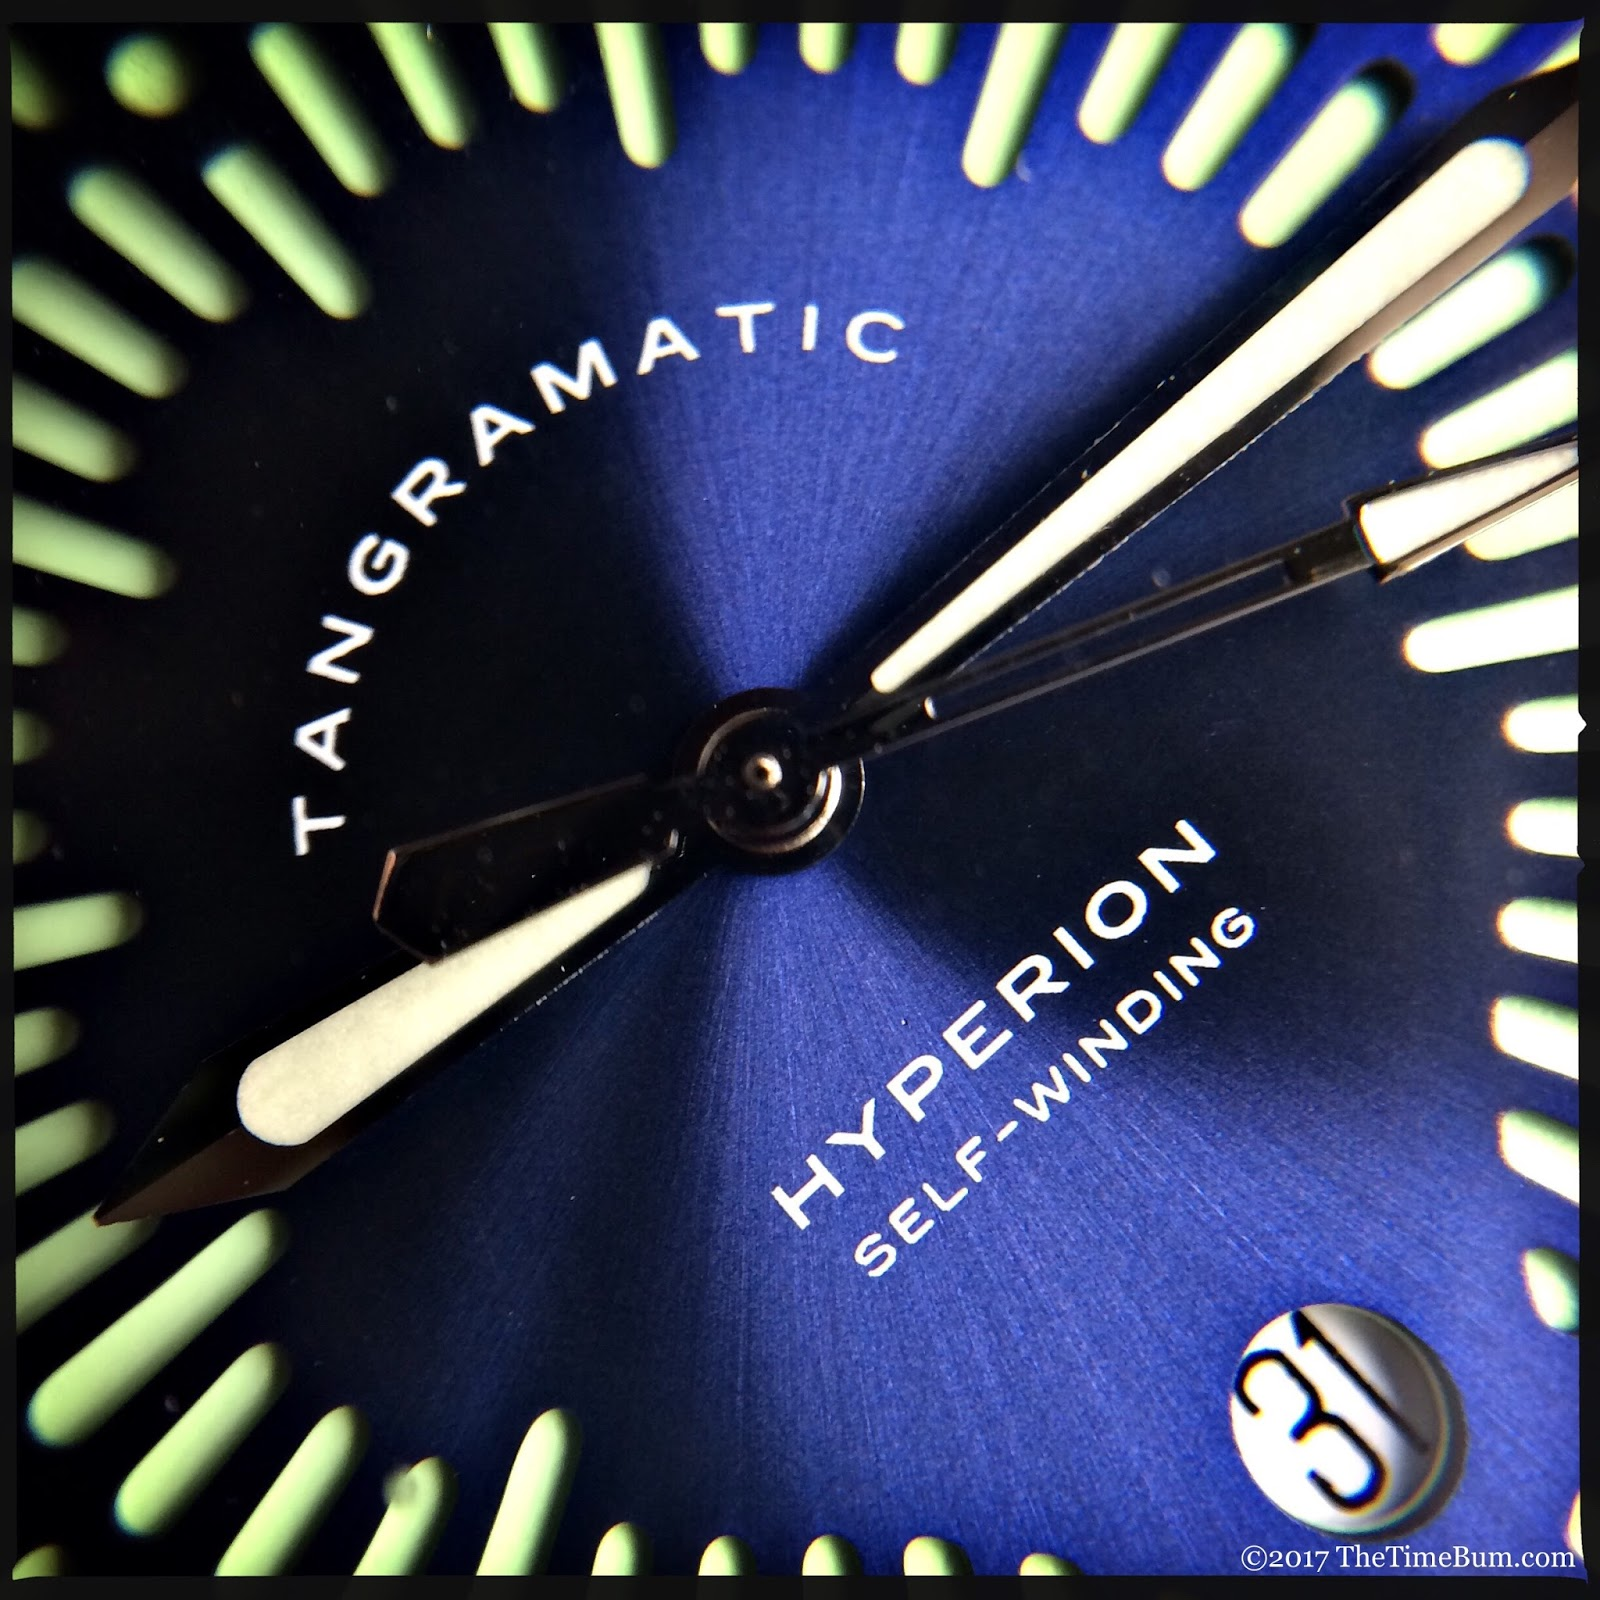 Tangramatic Hyperion automatic date macro